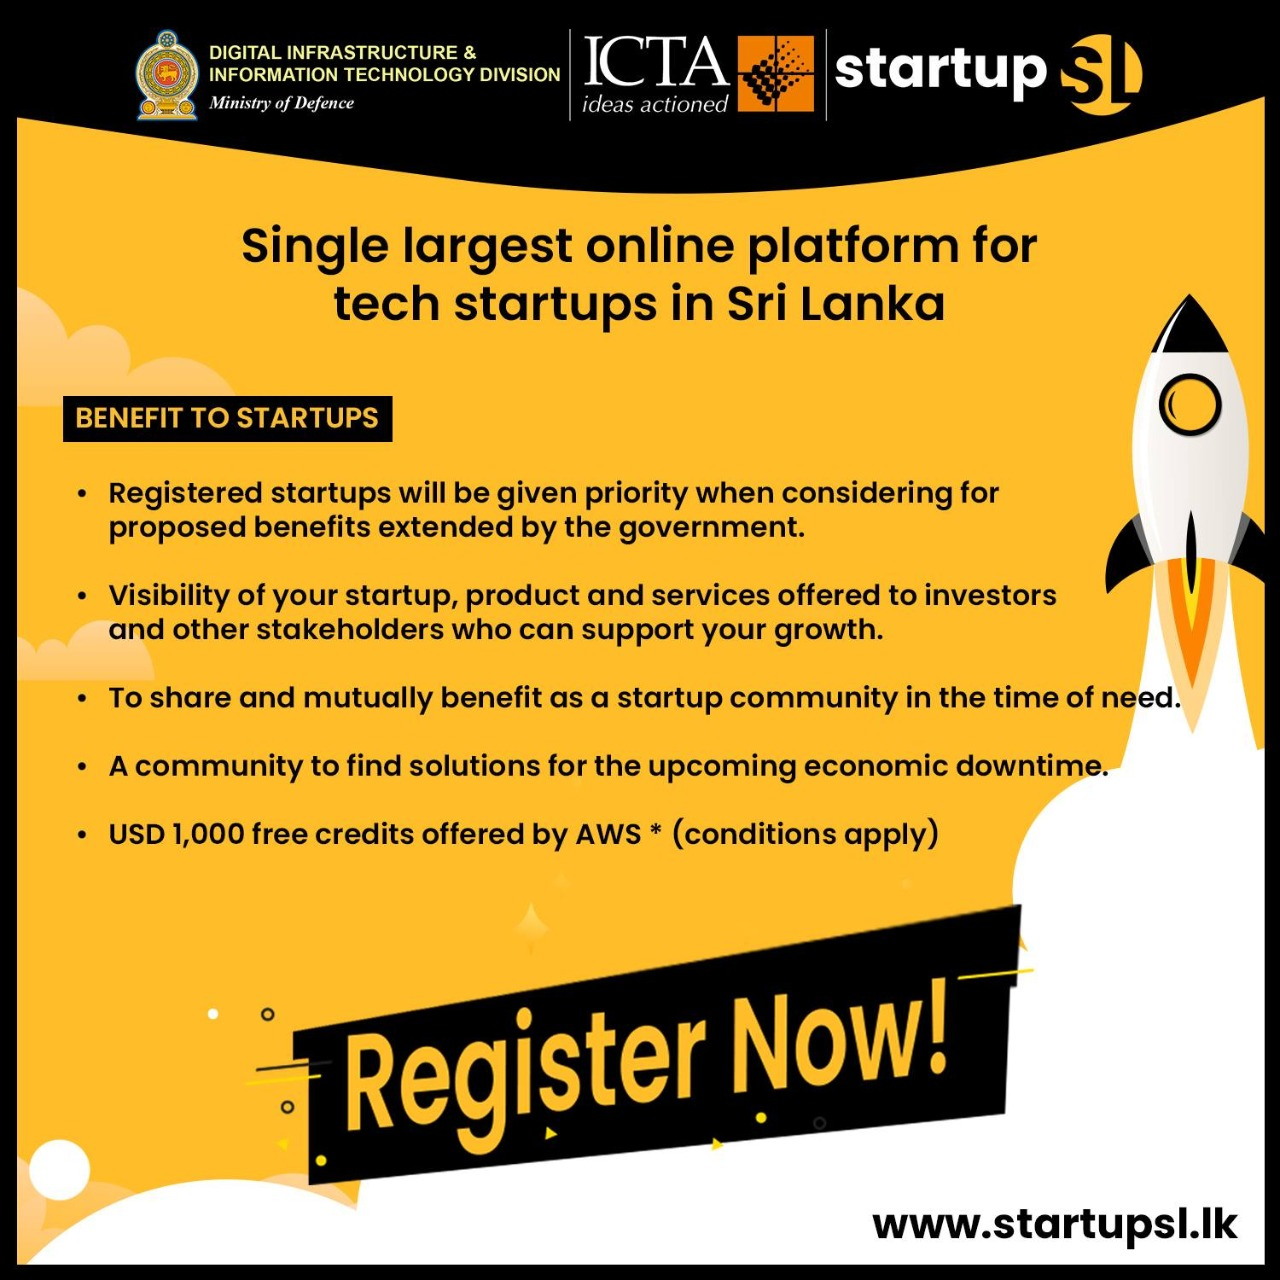 All technology startups in Sri Lanka are requested to register at Startupsl.lk